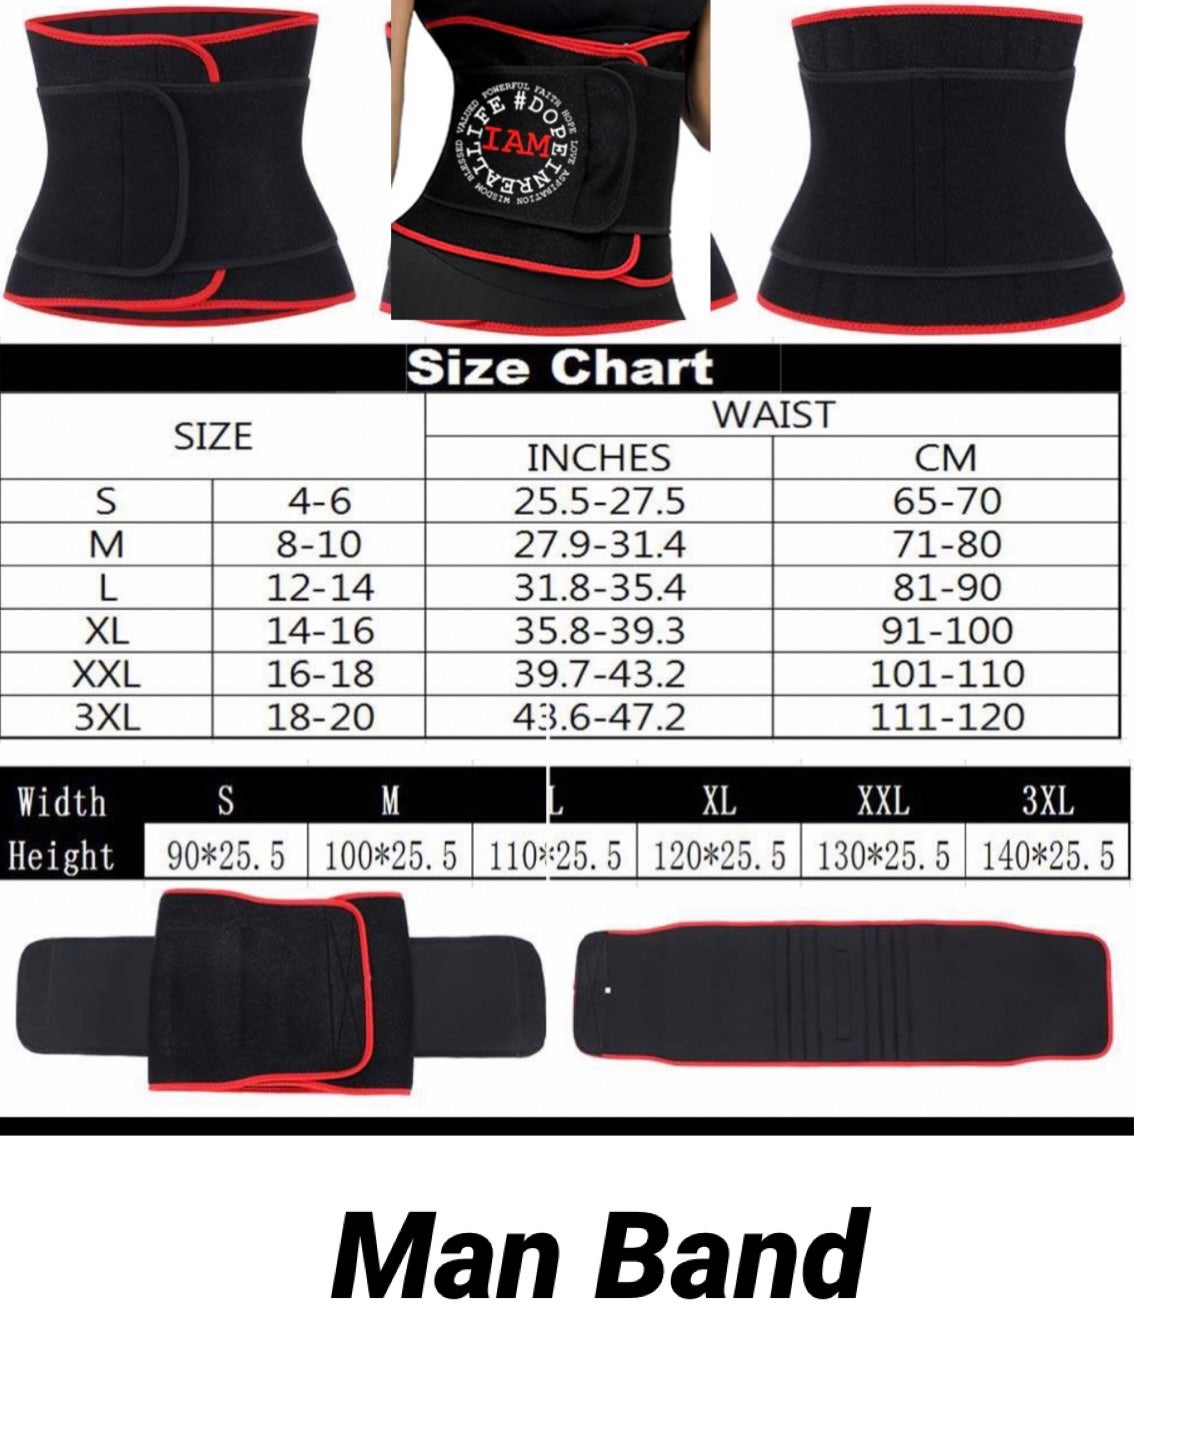 Image of DIRL Sweatbands and Waist Trainers